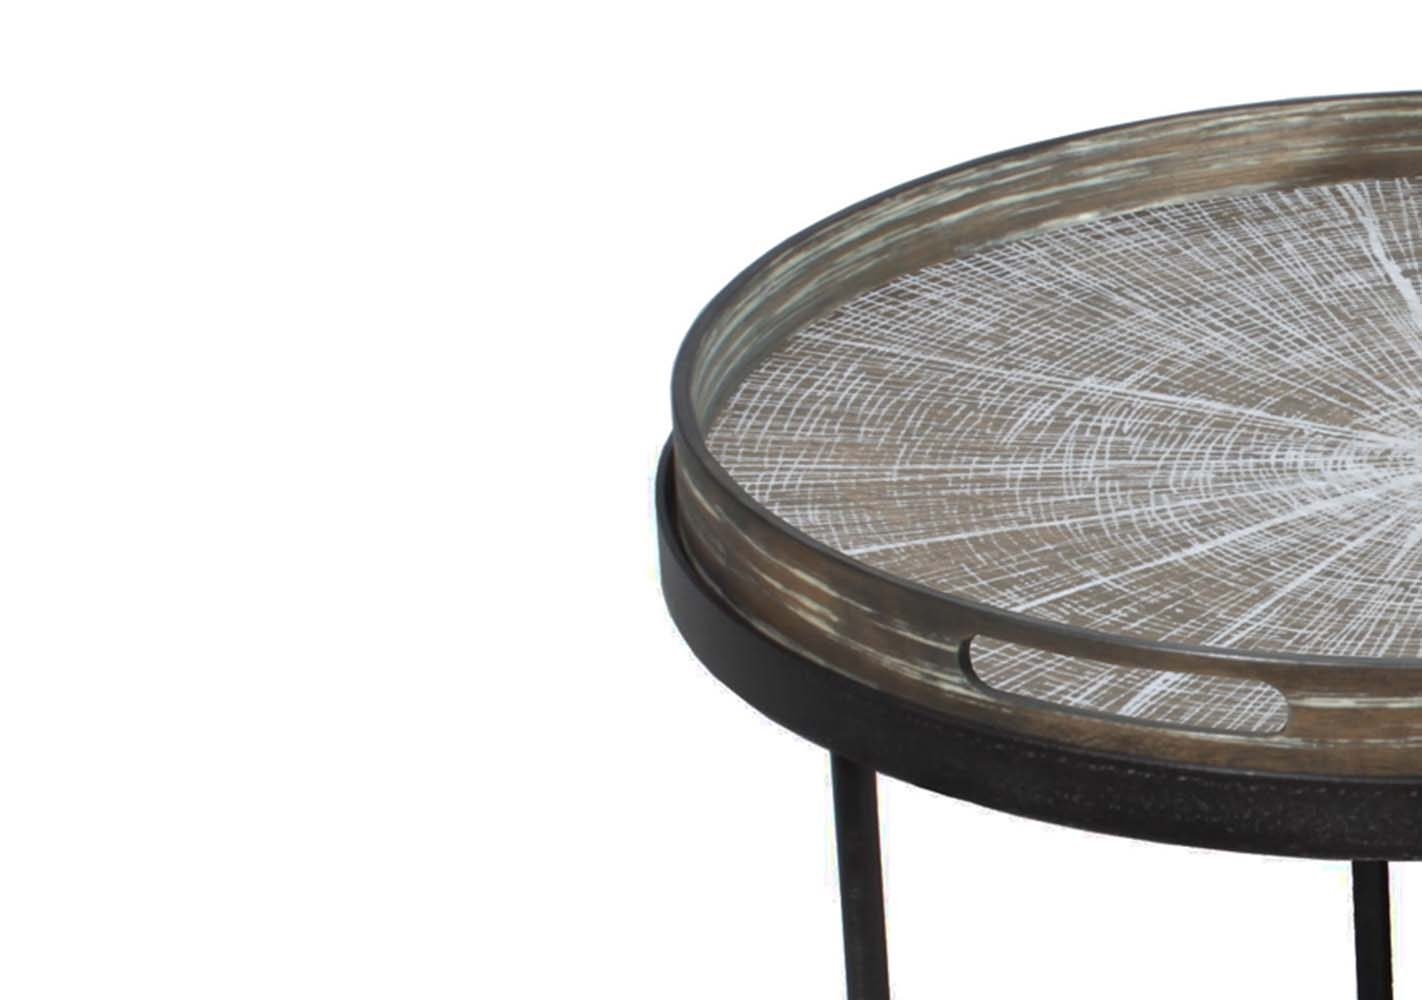 Set de Tables basses Round Tray - NOTRE MONDE